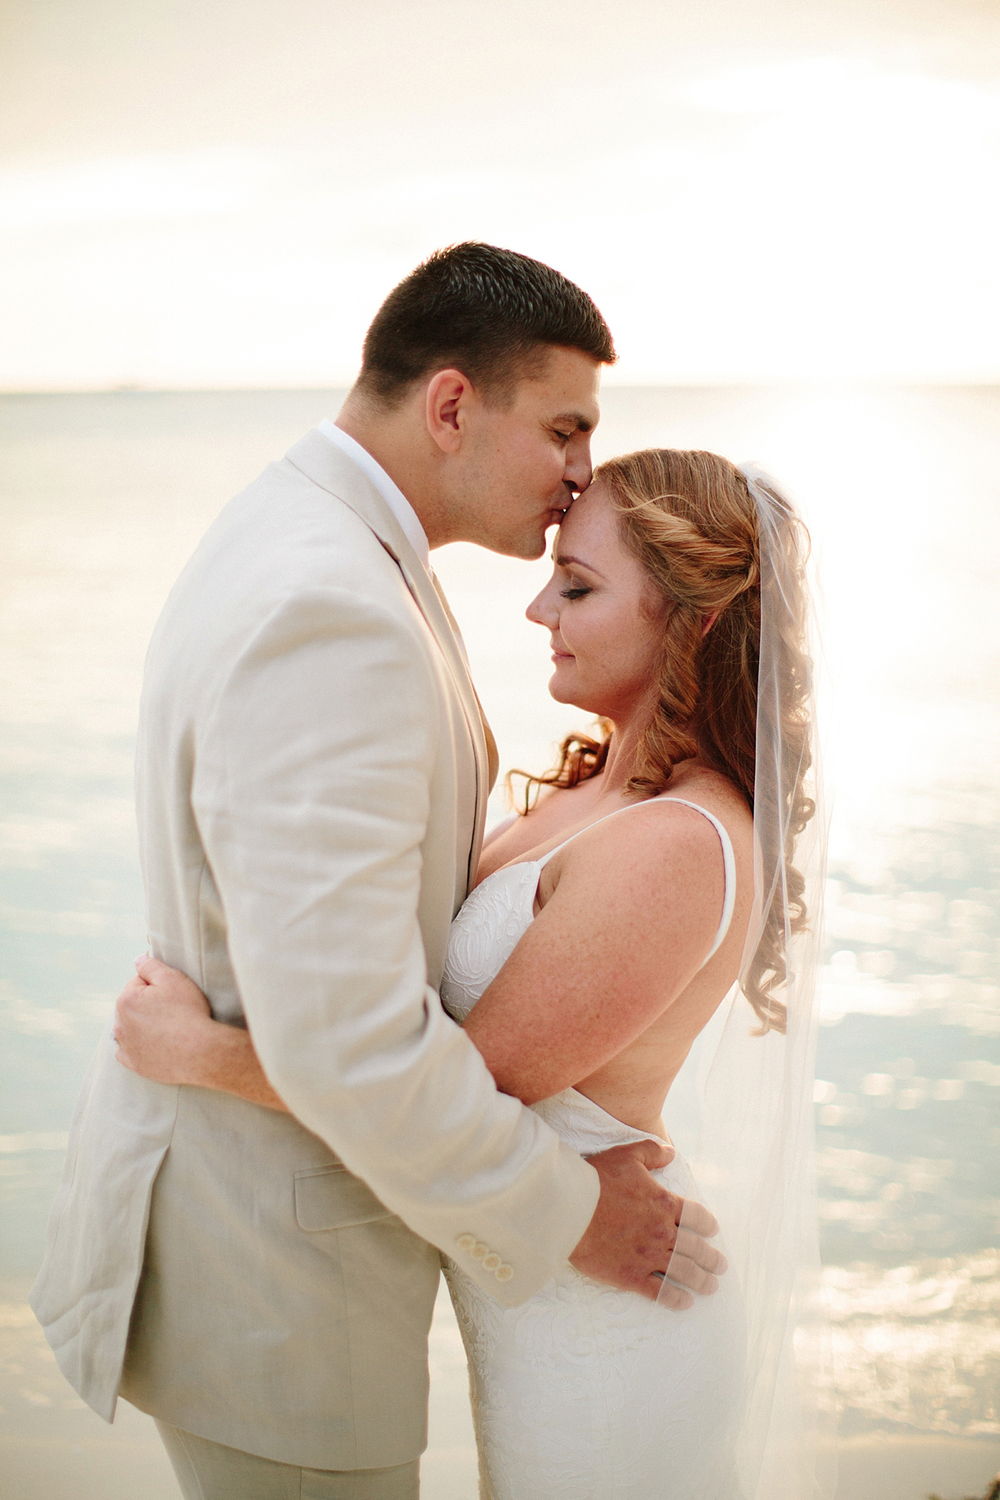 bahamas-destination-wedding-photographer-island-private-ceremony-staniel-cay_0037.jpg